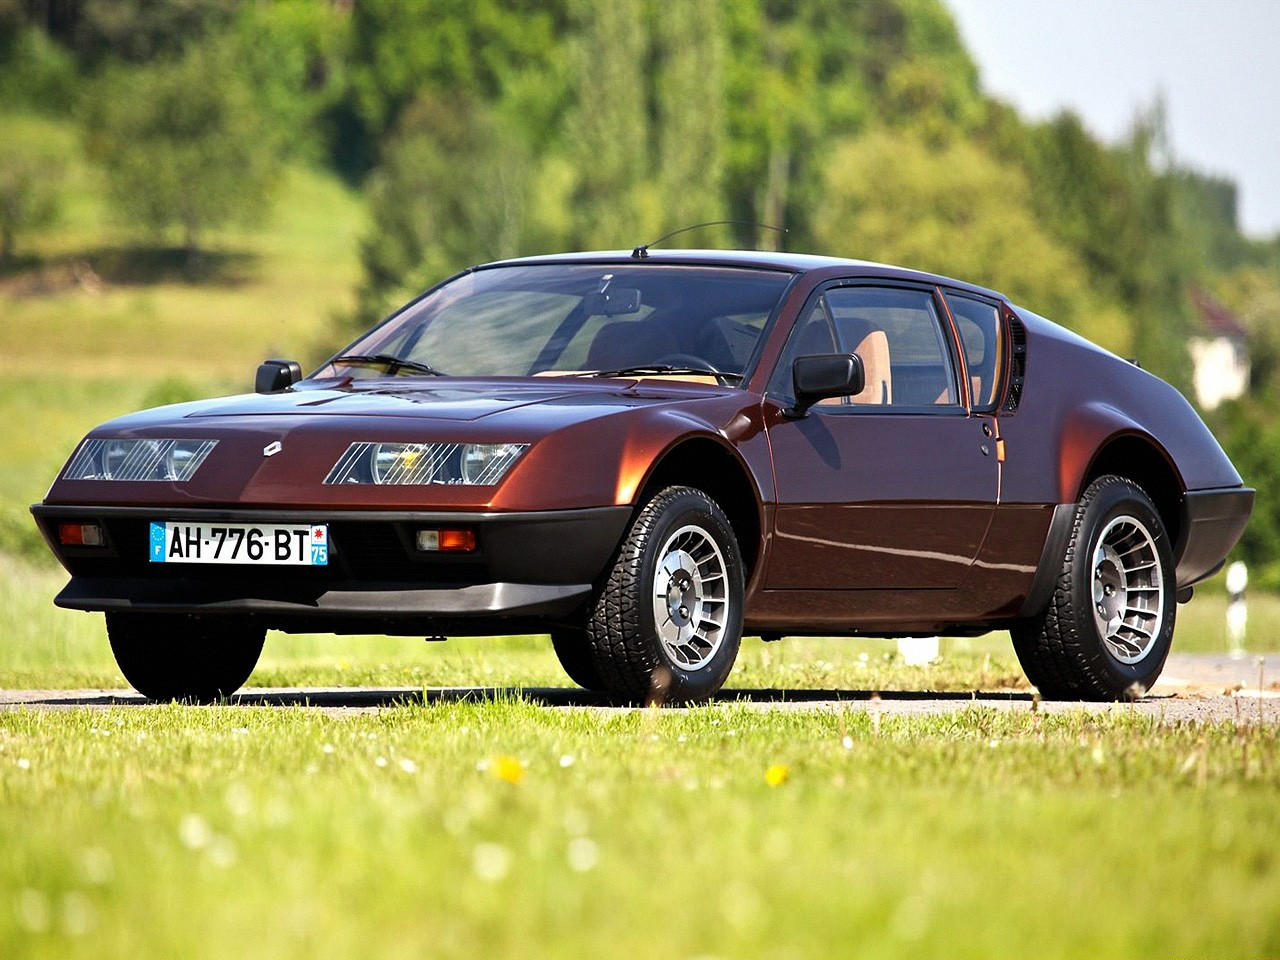 renault alpine a310 specs photos 1977 1978 1979. Black Bedroom Furniture Sets. Home Design Ideas